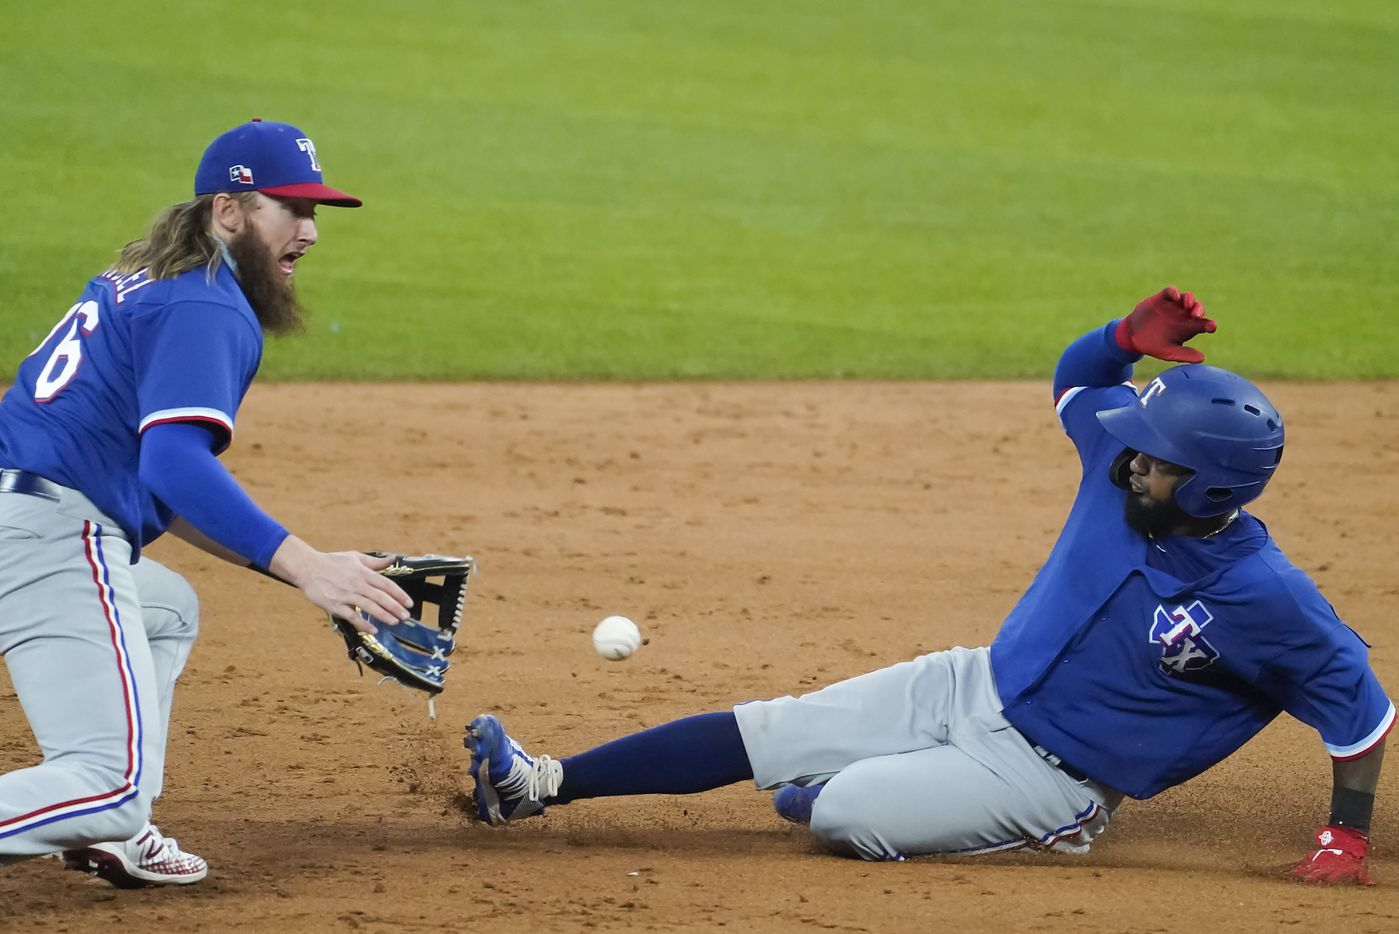 Texas Rangers infielder Davis Wendzel takes the throw as Yonny Hernandez attempts to steal second base during a game between players at the team's alternate training site at Globe Life Field on Saturday, Sept. 19, 2020.